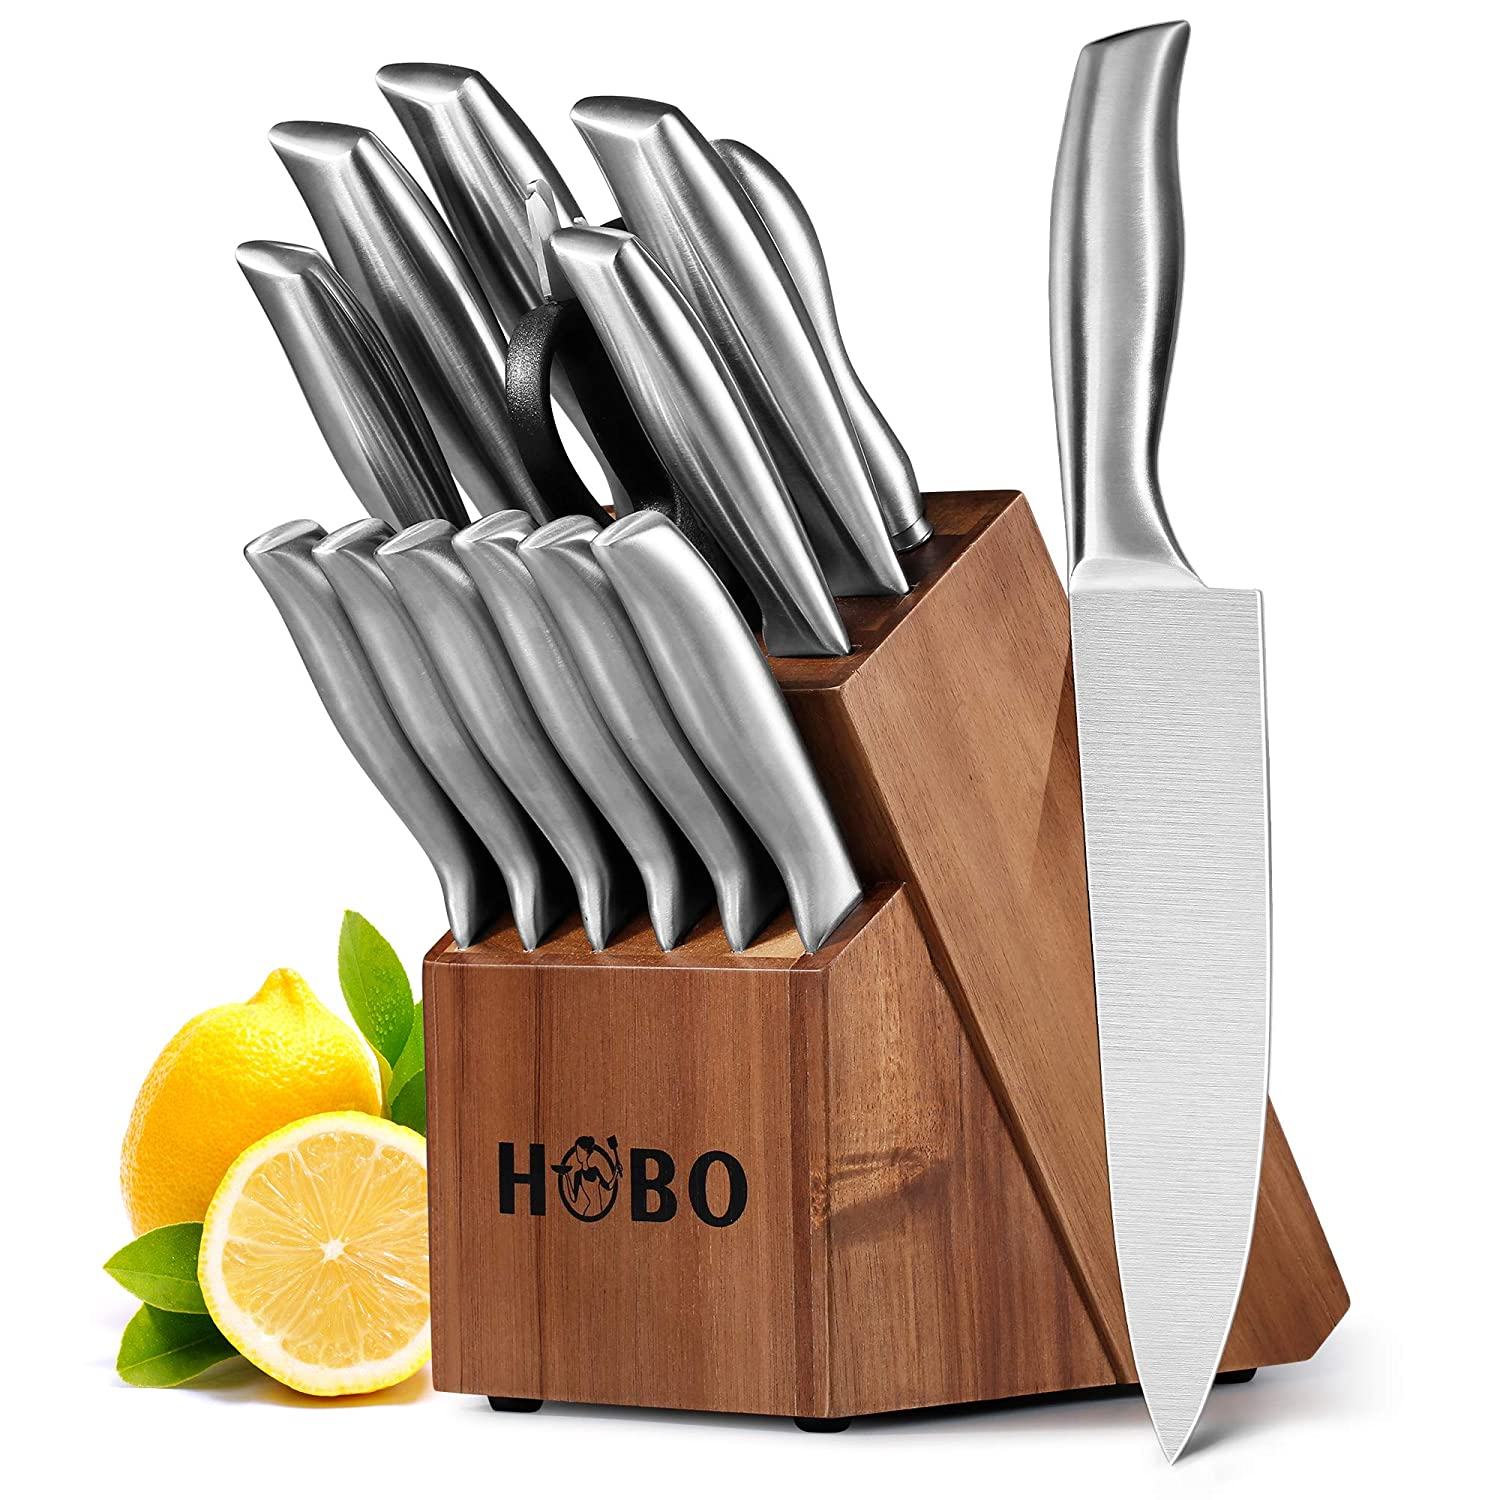 Knife Set, HOBO 14-Piece Kitchen Knife Set with Block Wooden, Self Sharpening for Chef Knife Set, Stainless Steel, Boxed Knife Sets 14-Piece Kitchen Knives